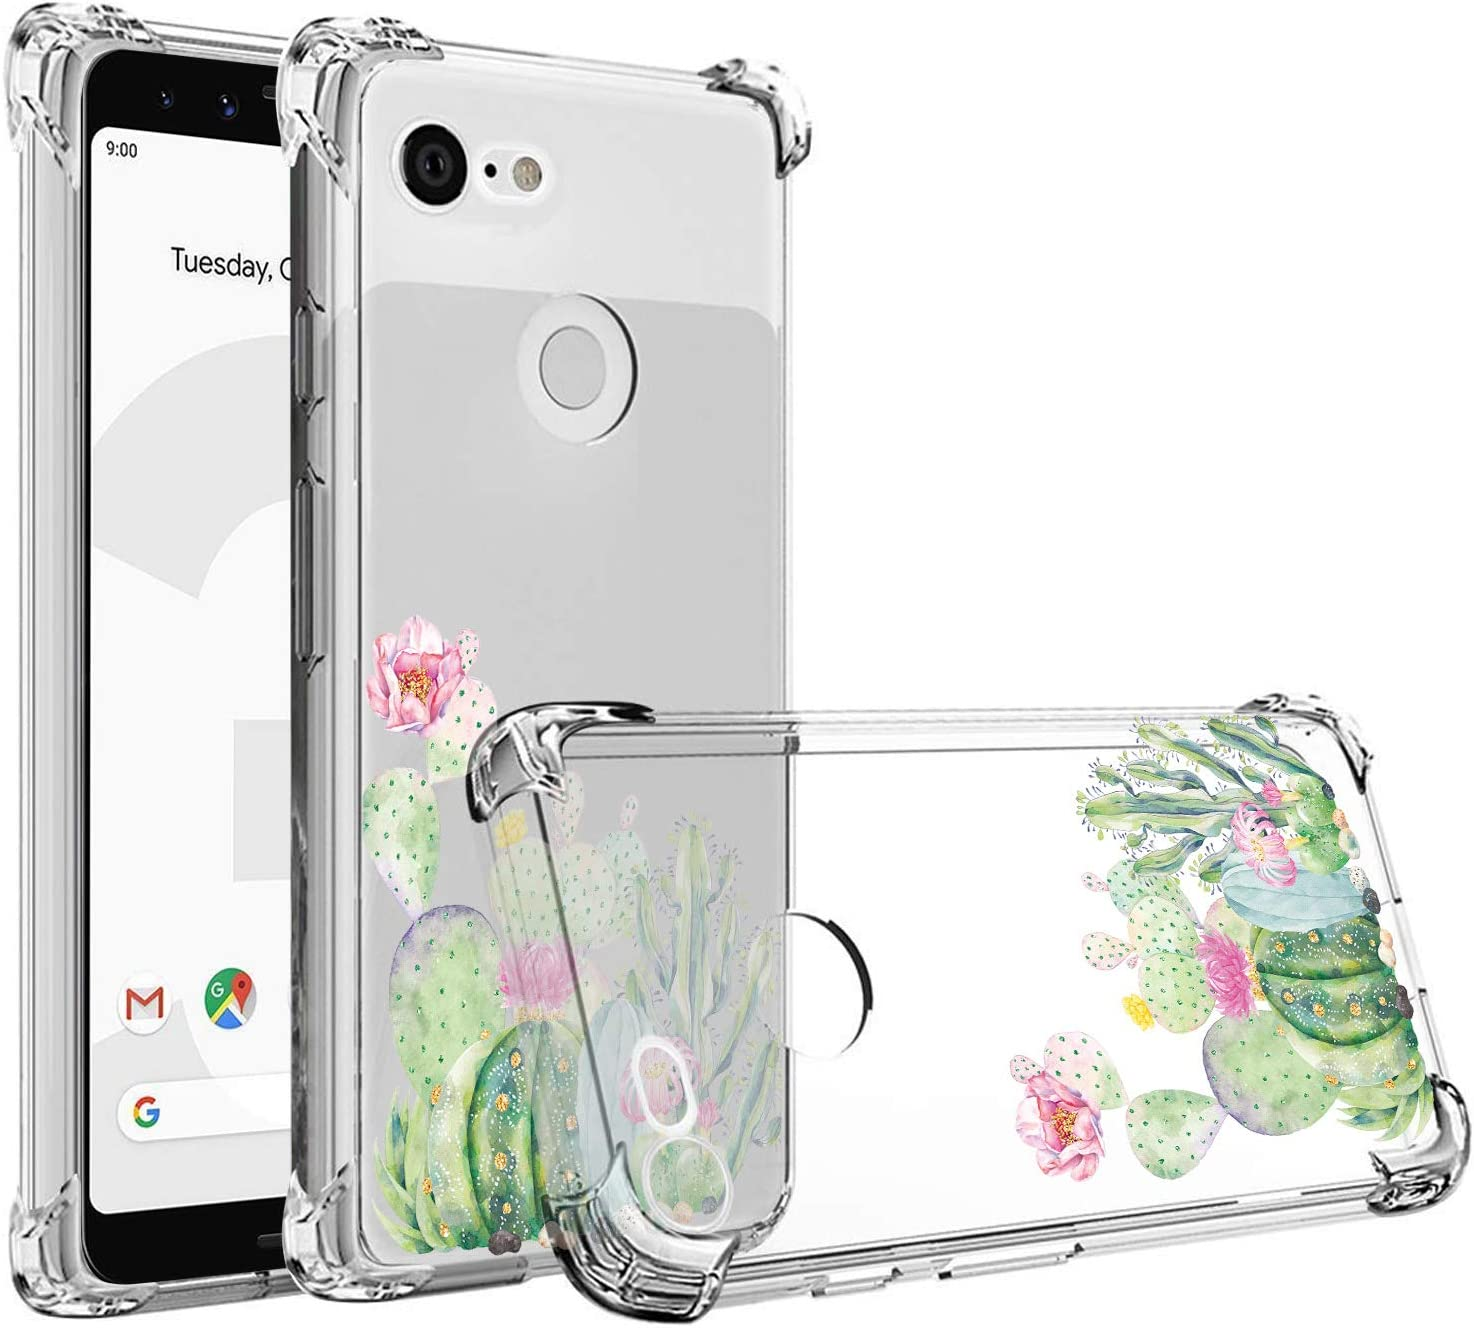 JAHOLAN Compatible with Google Pixel 3a Case Clear Cute Green Cactus Girls Floral Design TPU Soft Slim Flexible Silicone Cover Phone Case for Google Pixel 3a